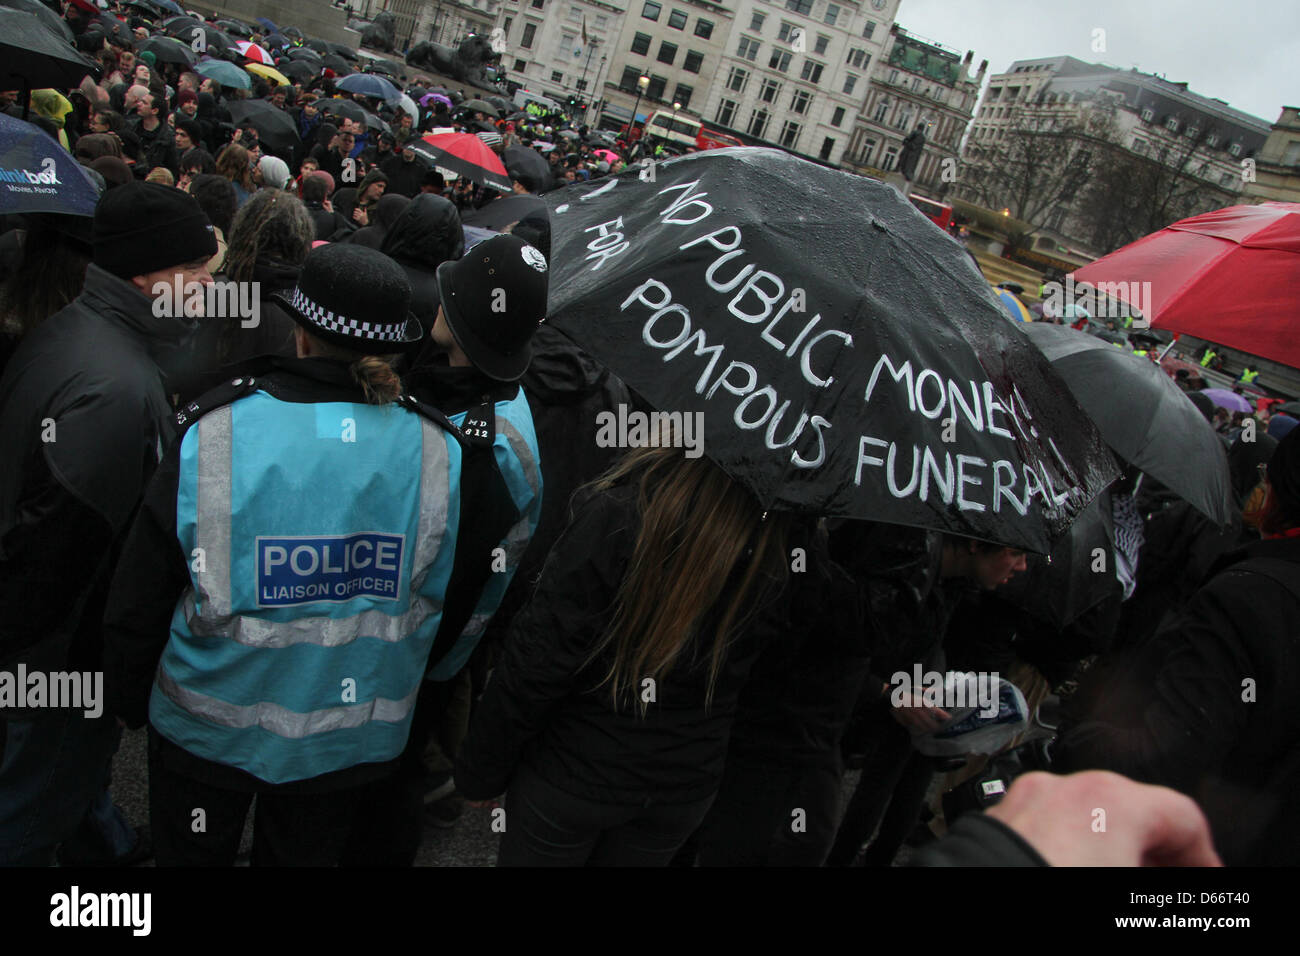 London, UK. 13 April 2013. Students, socialists and anarchists marked former prime minister's death by a demonstration - Stock Image